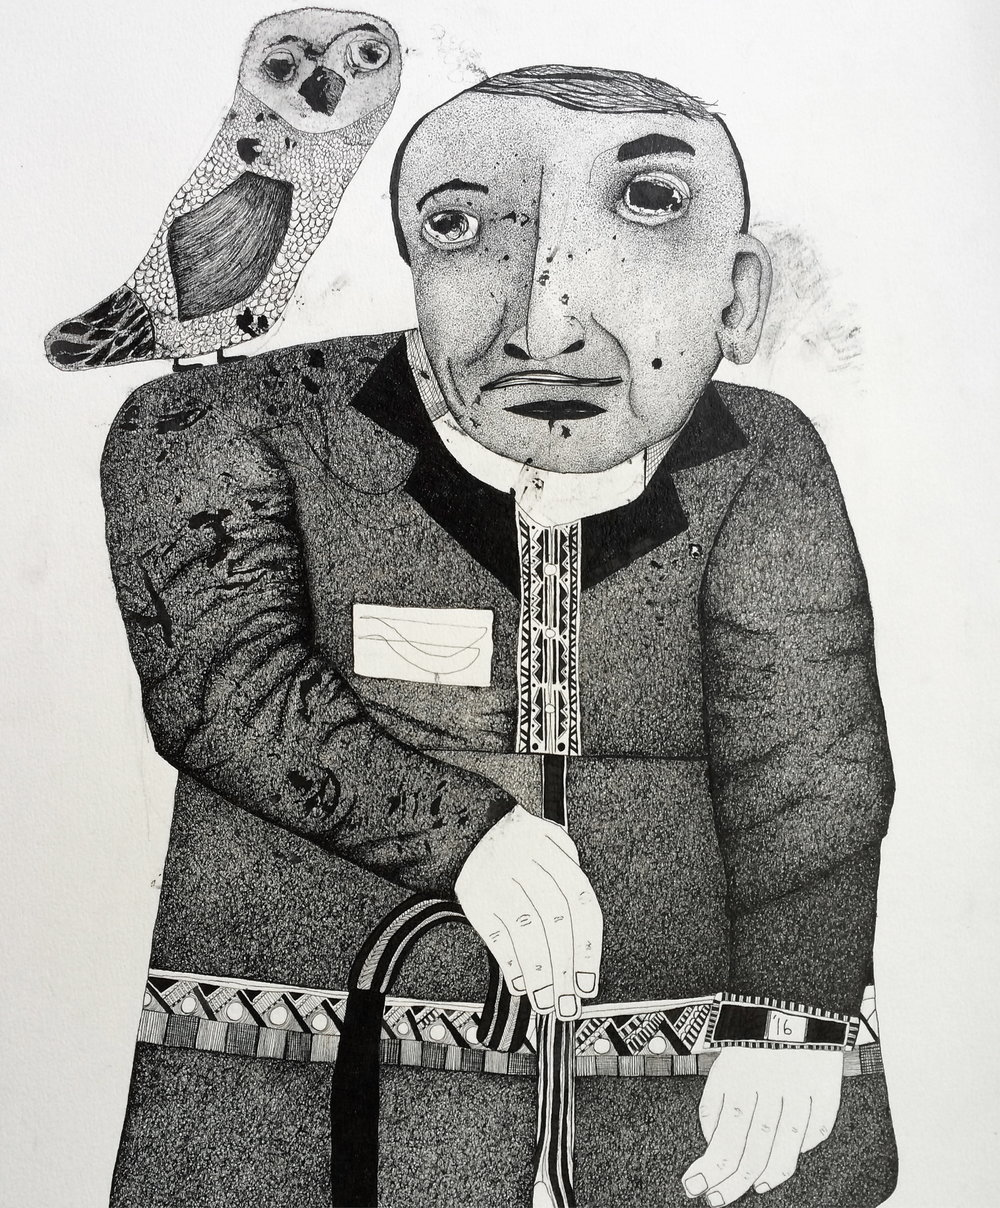 Man with Owl, 2016